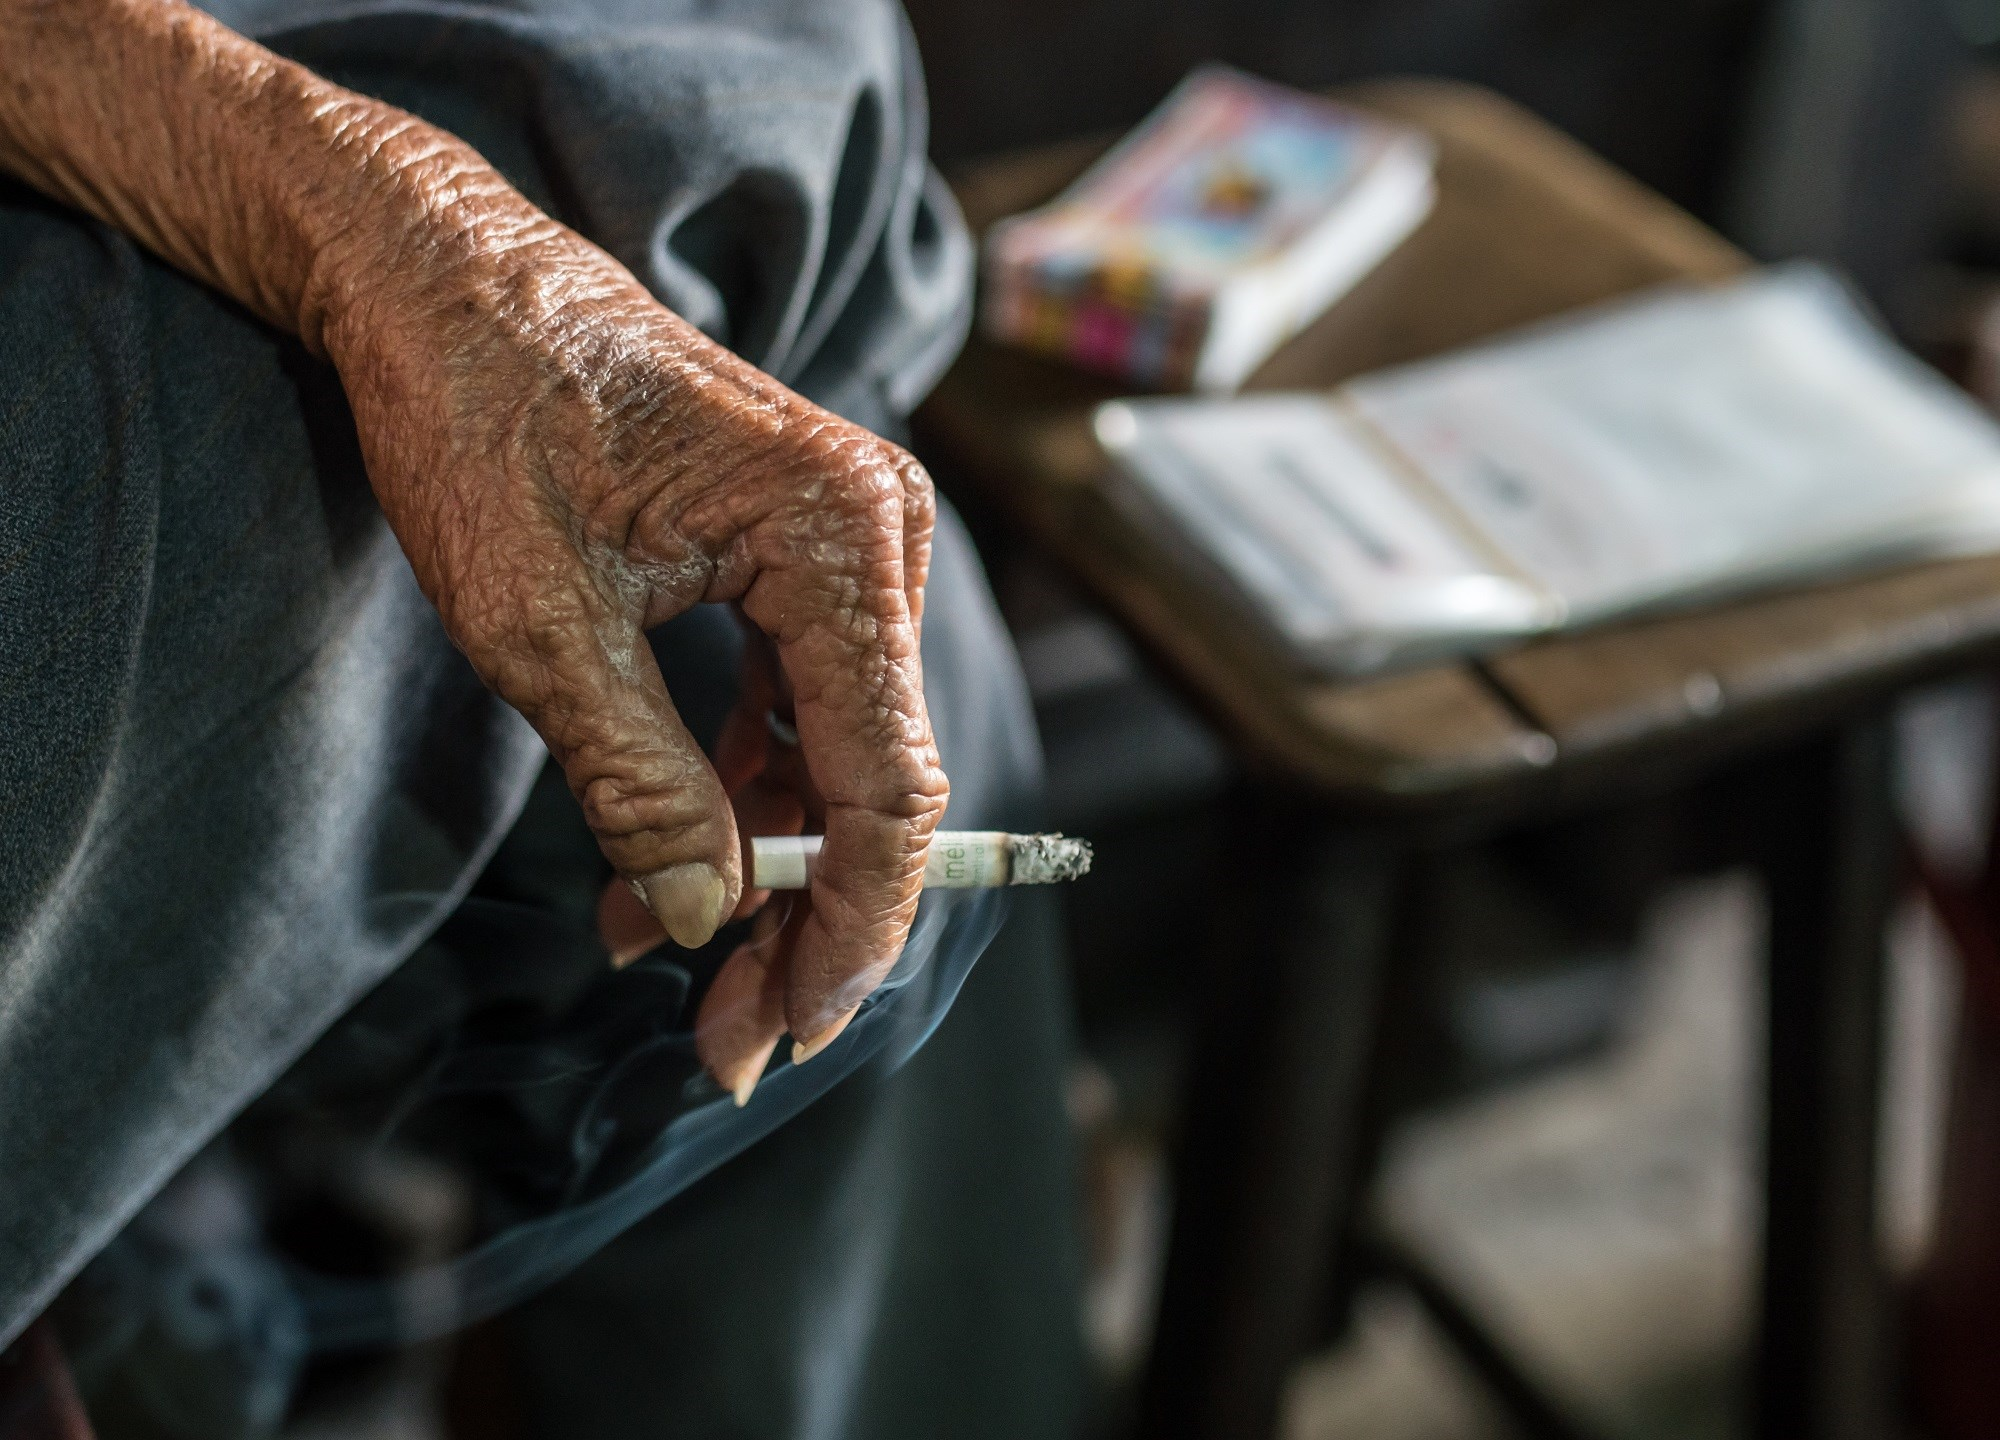 Anxiety and depression predict poor future physical health as strongly as obesity and smoking in older adults.